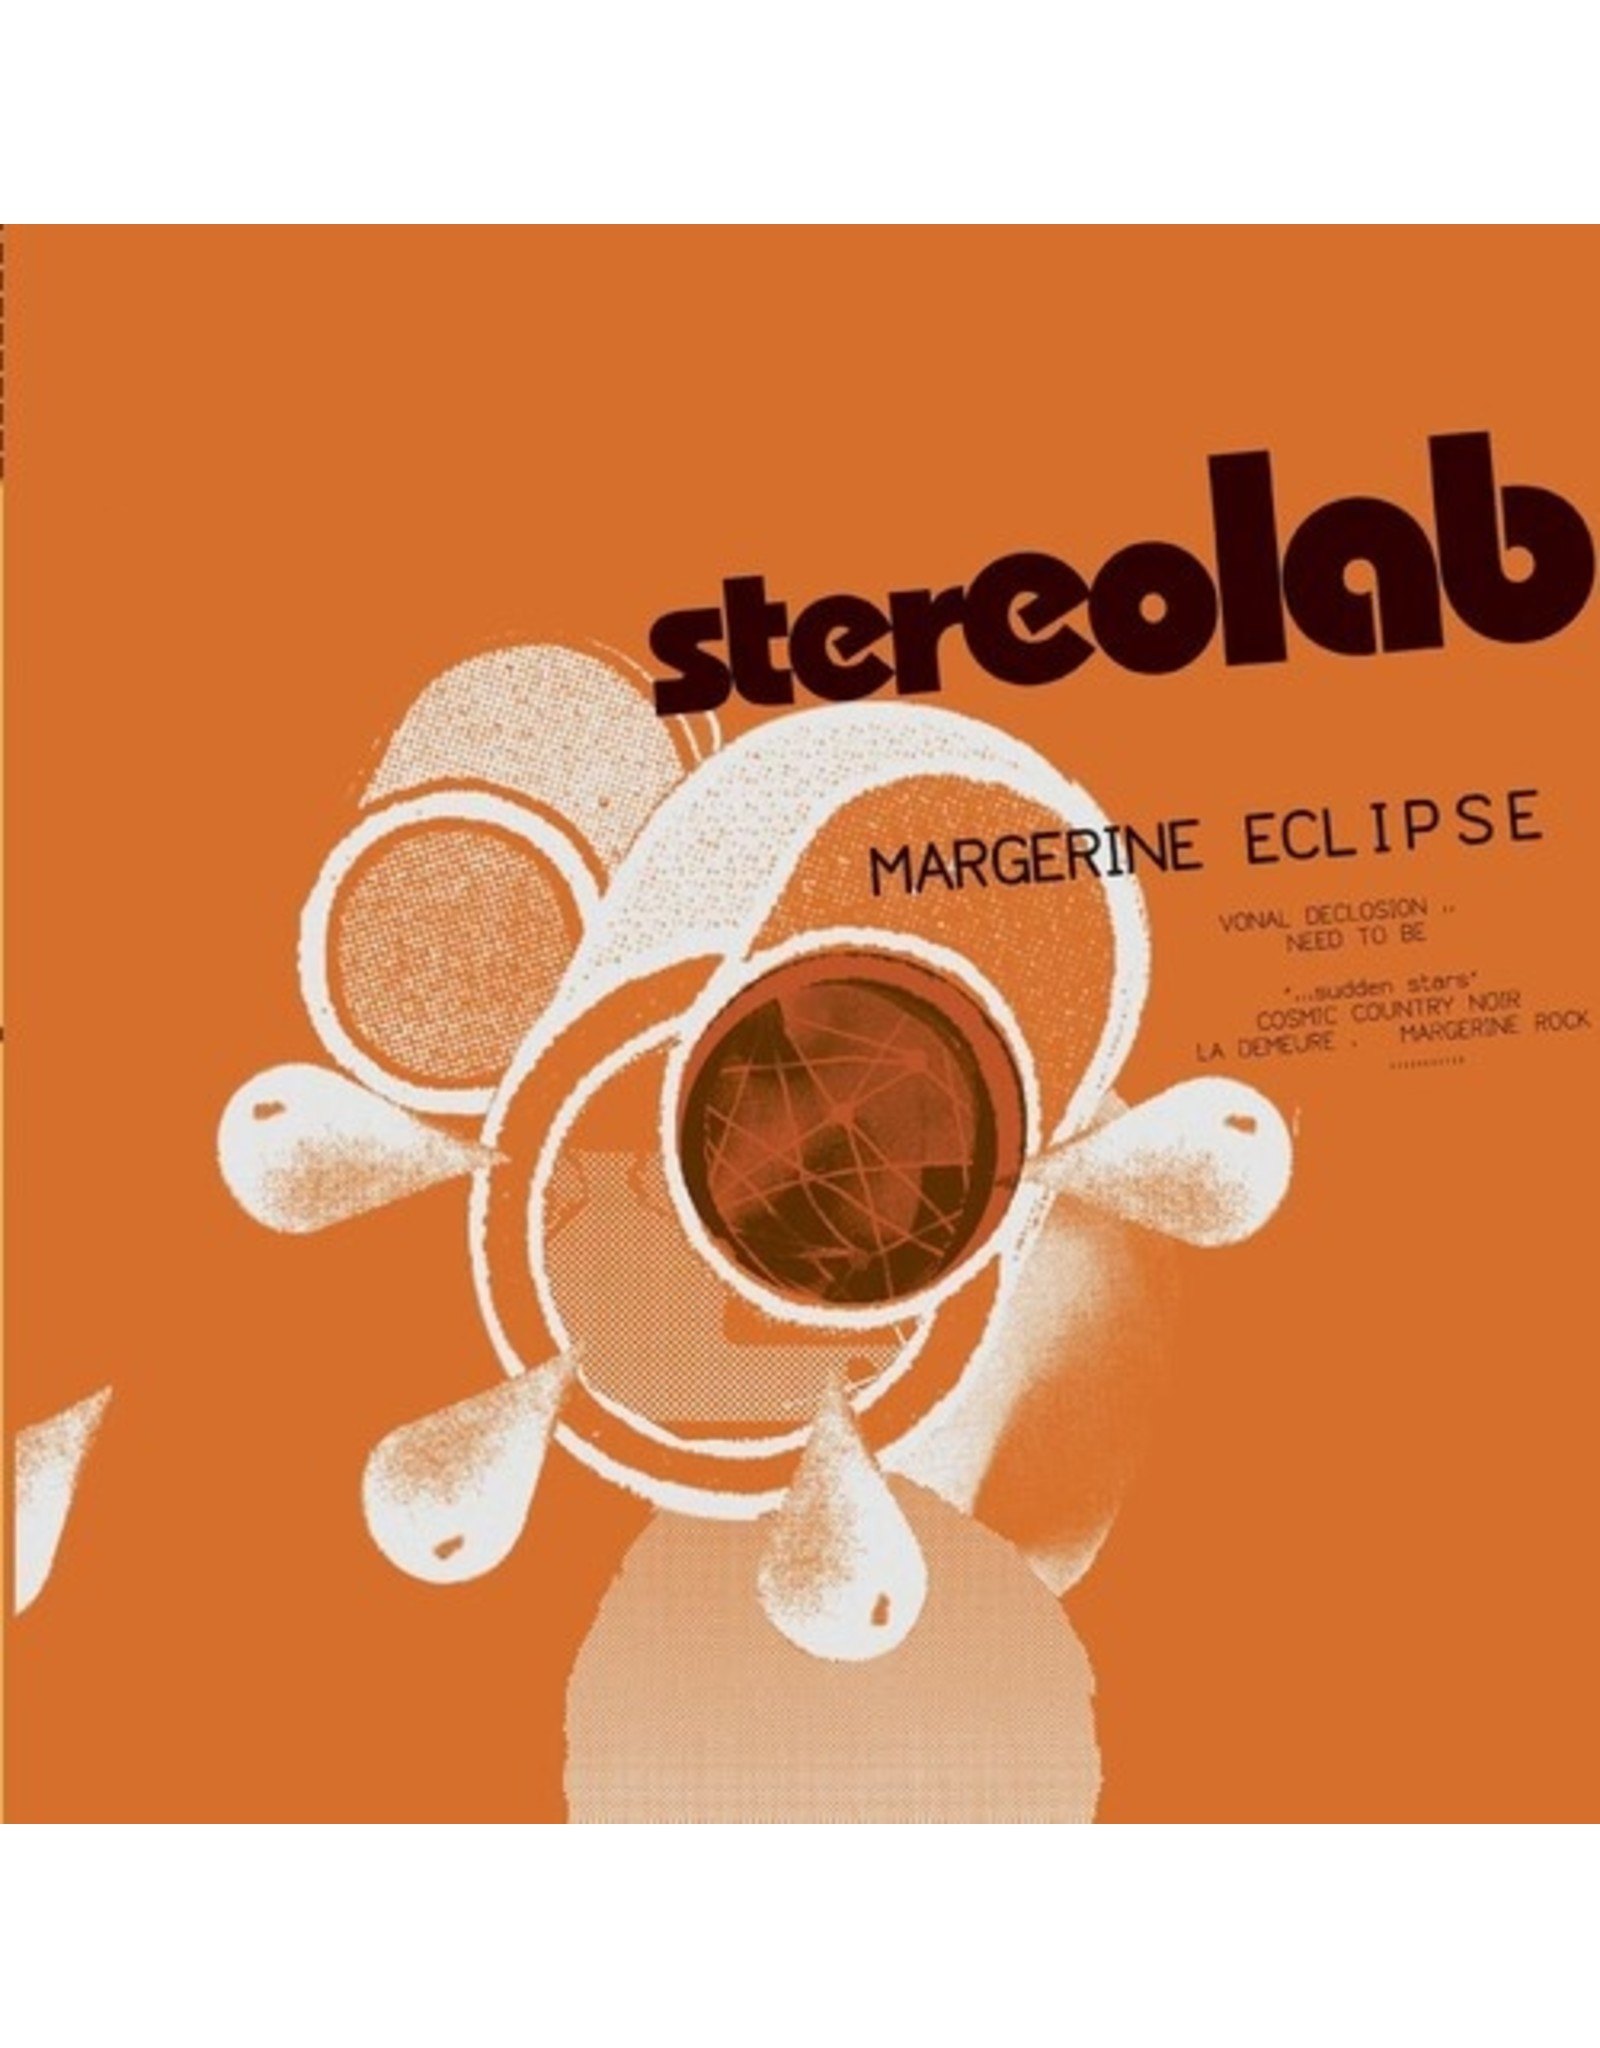 New Vinyl Stereolab - Margerine Eclipse (Expanded) 3LP